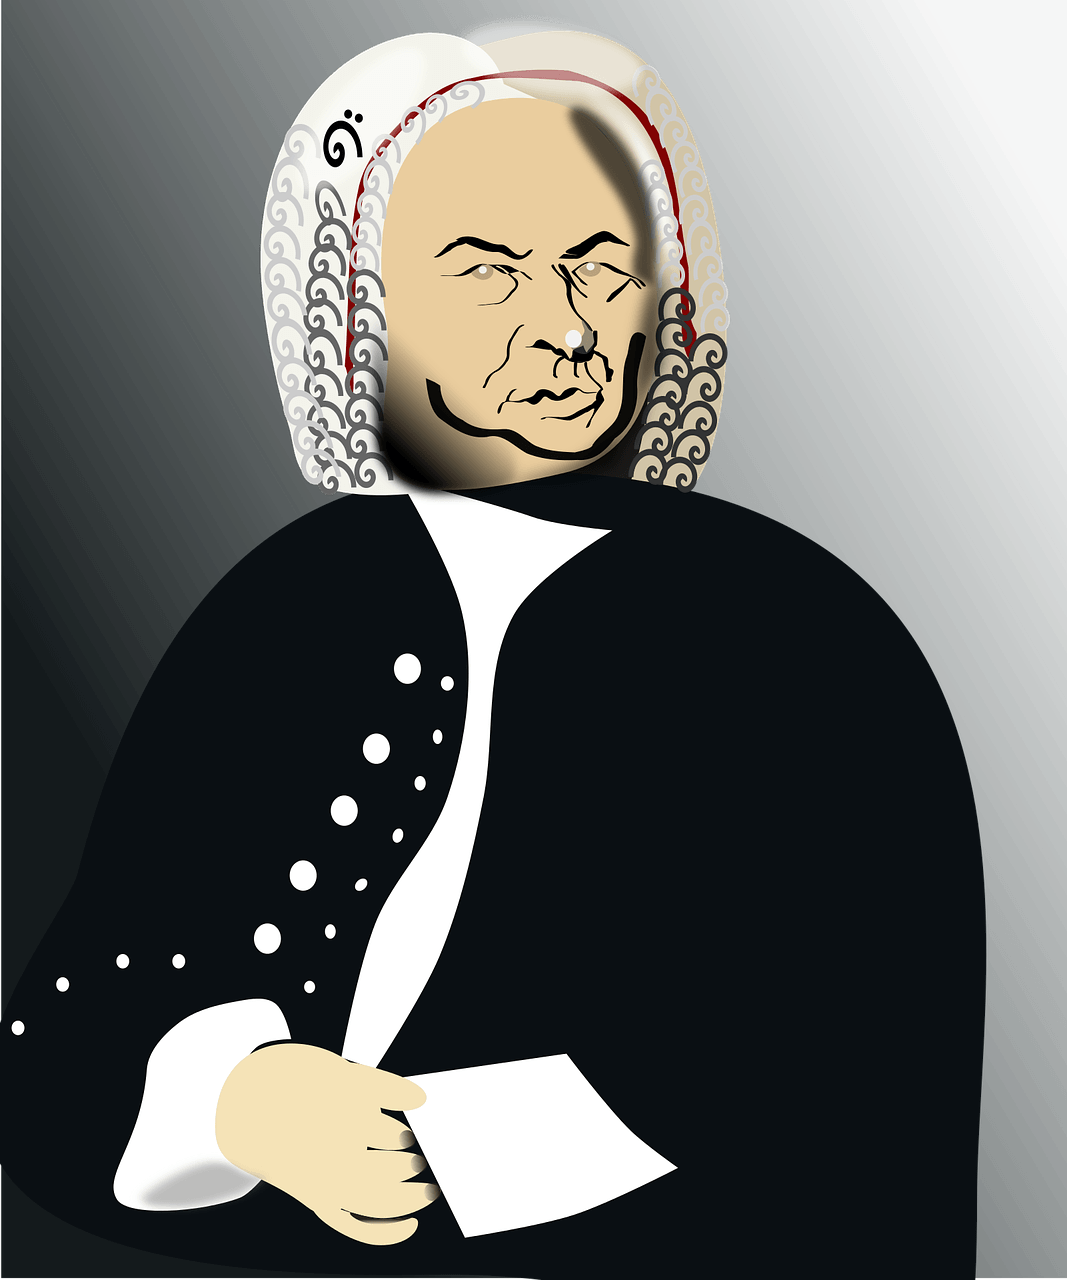 Google Doodle Lets You Create Your Own Melody In The Style Of Johann Sebastian Bach